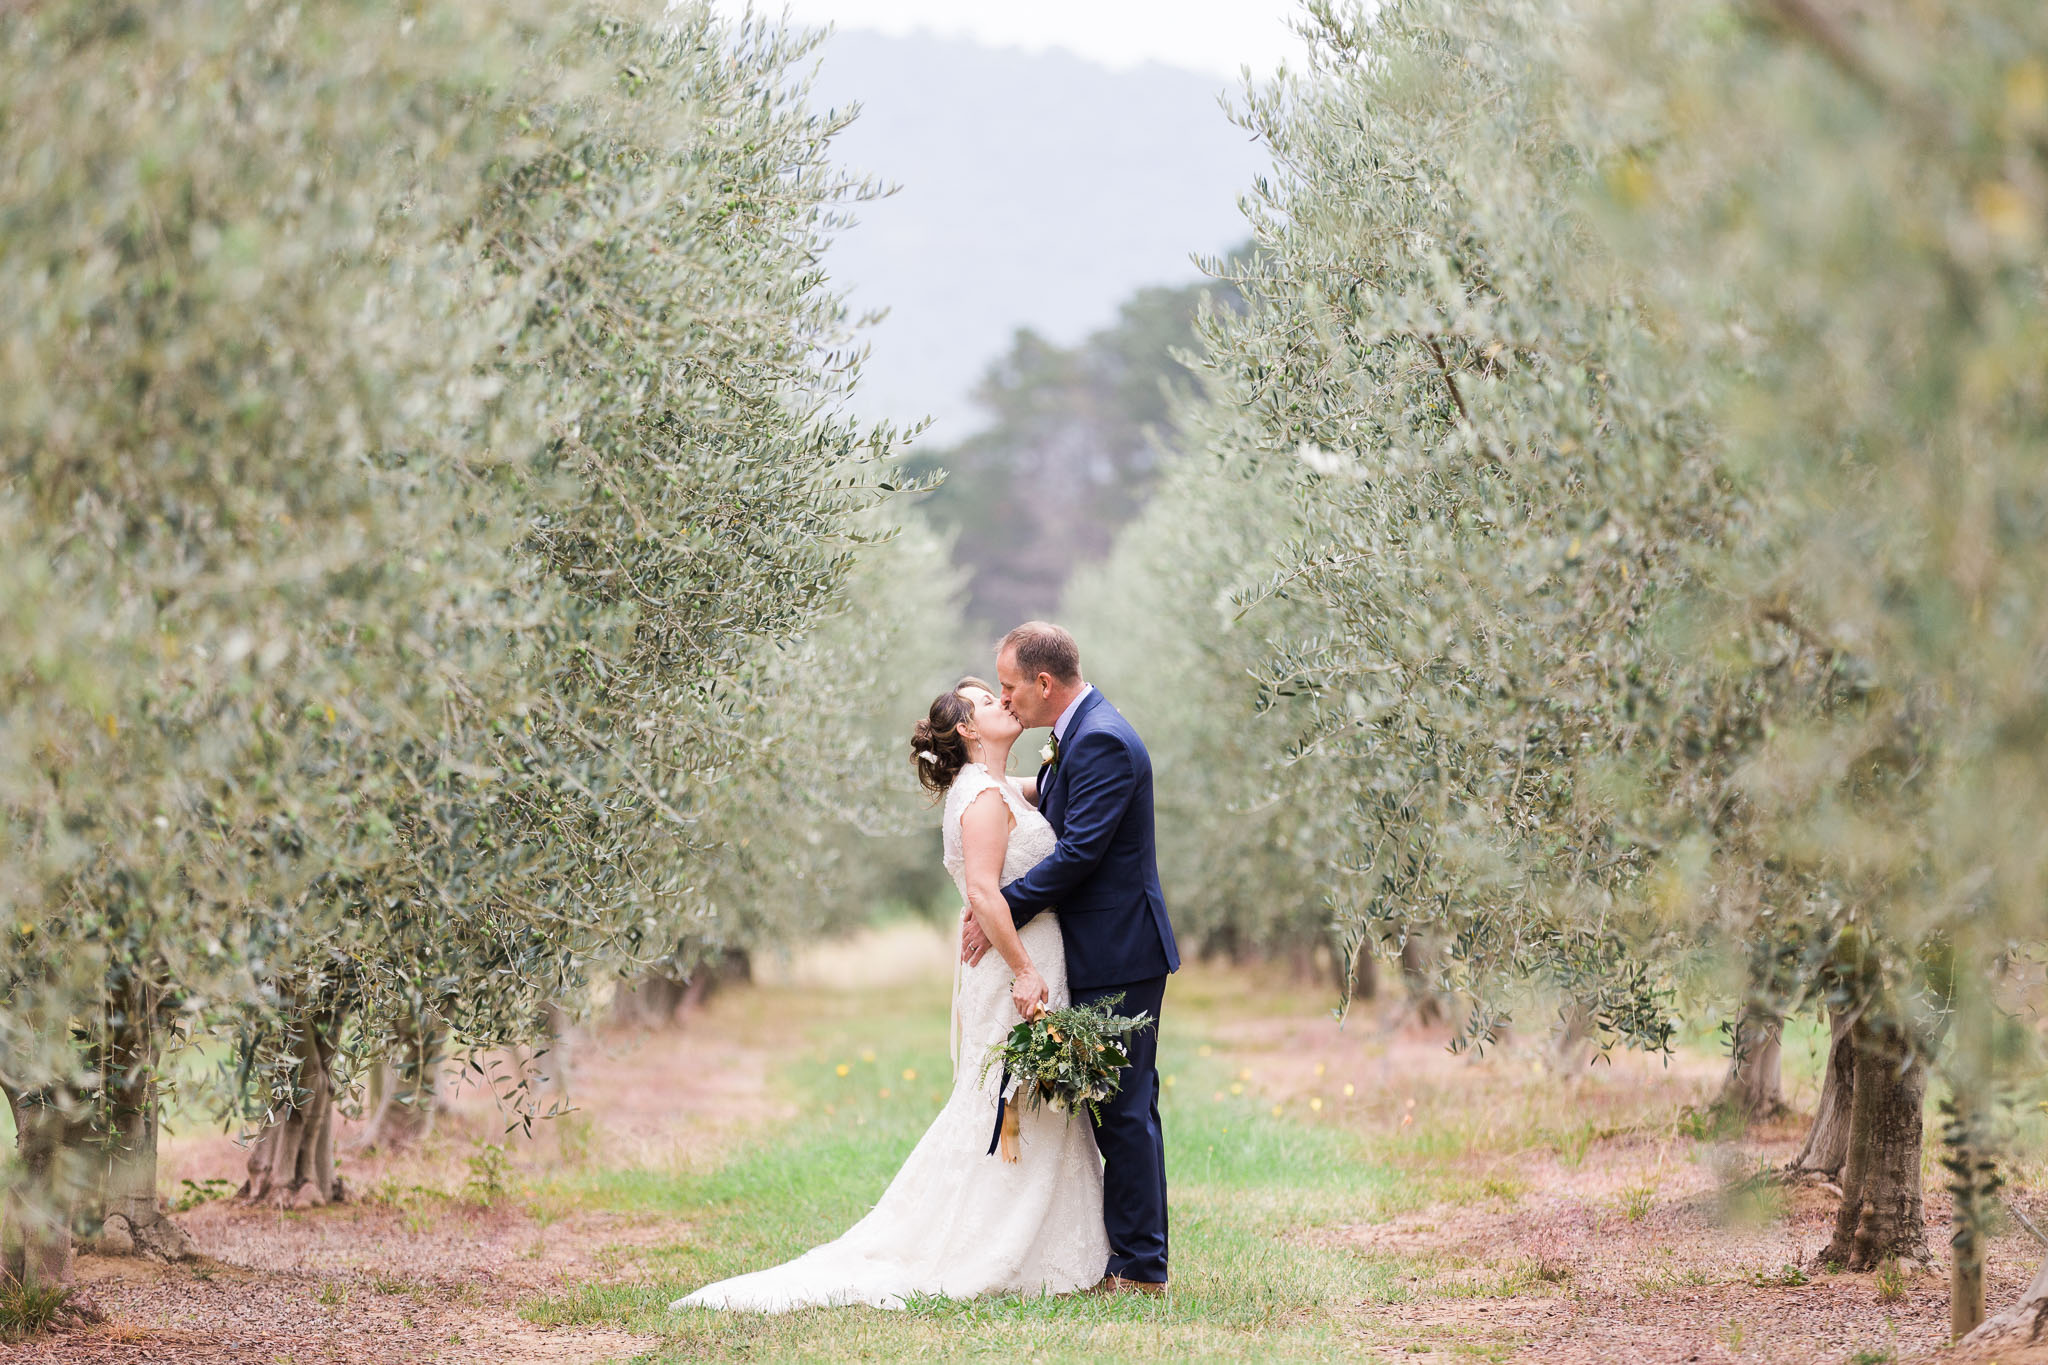 Olive Grove Wedding Photos at Pialligo Estate Canberra